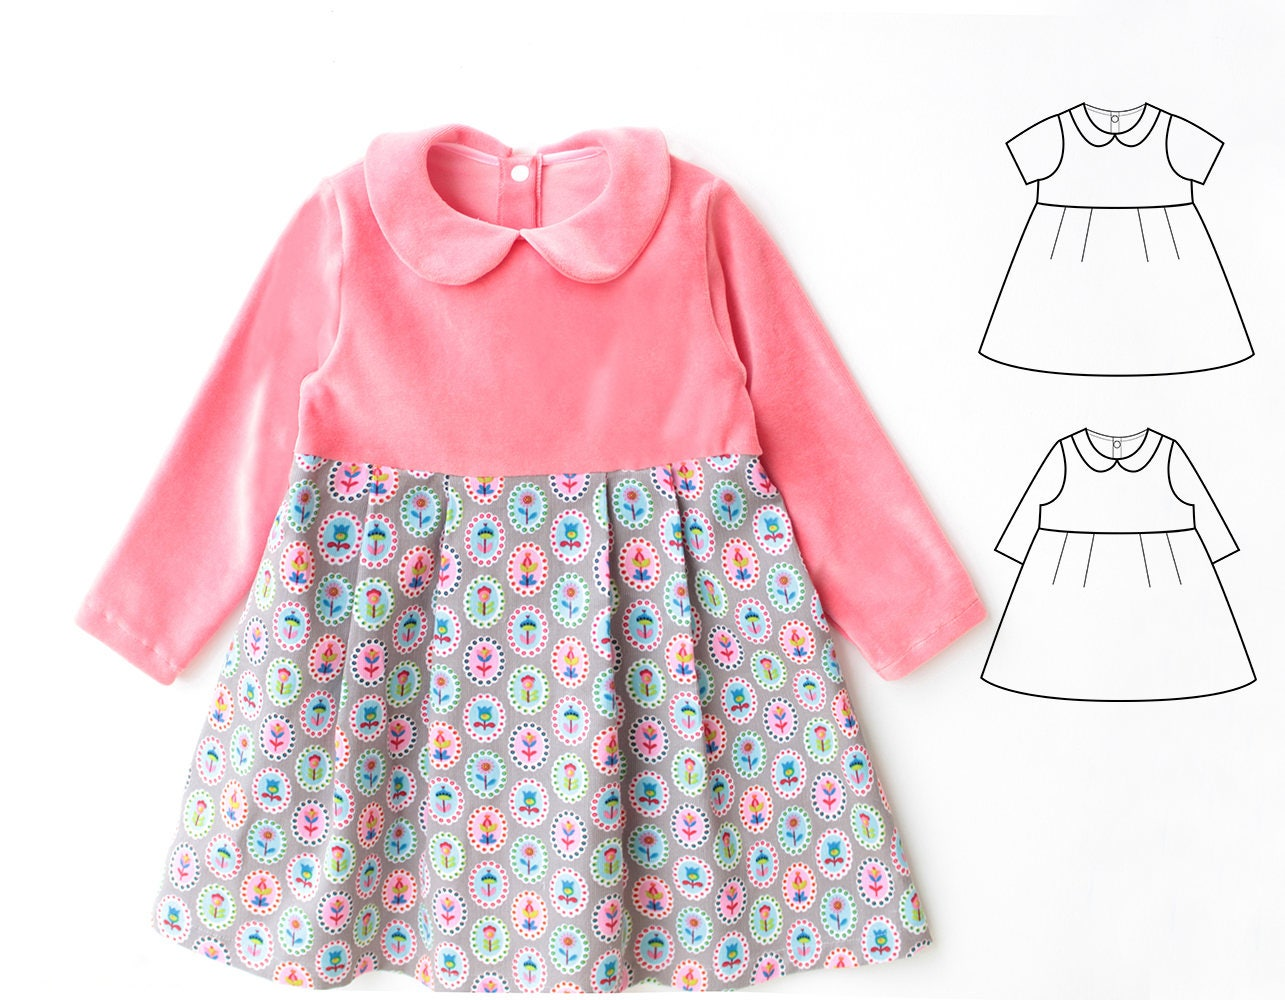 Jersey Knit Sewing Patterns : PAULINE Girl Baby Girl Dress sewing pattern Pdf Jersey Knit